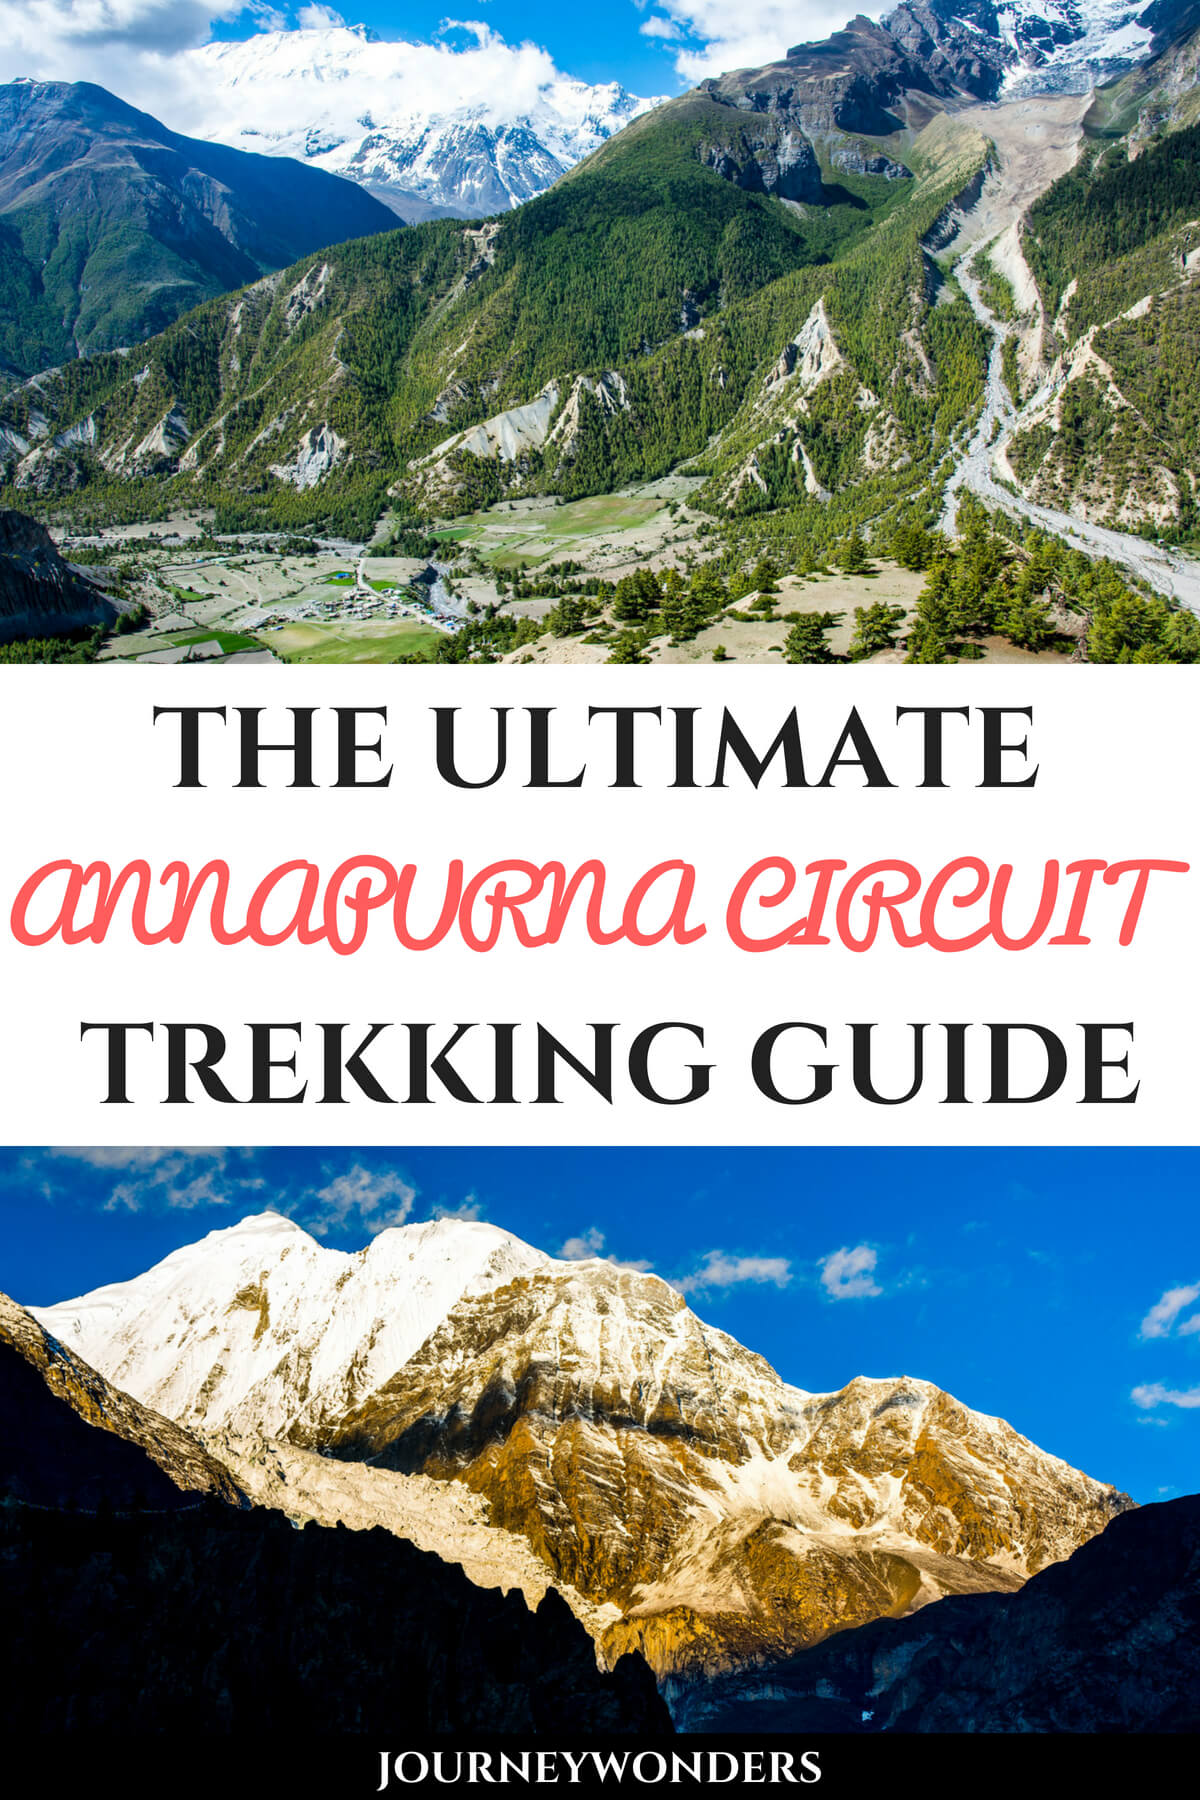 The Annapurna Circuit Trek is one of Nepal's best treks ever. Here's the Ultimate Trekking Guide to conquer the Annapurna Circuit including Trek costs, the best season to visit, what to pack, where to sleep and much more!!! #Annapurna #Nepal #Trek #Himalayas